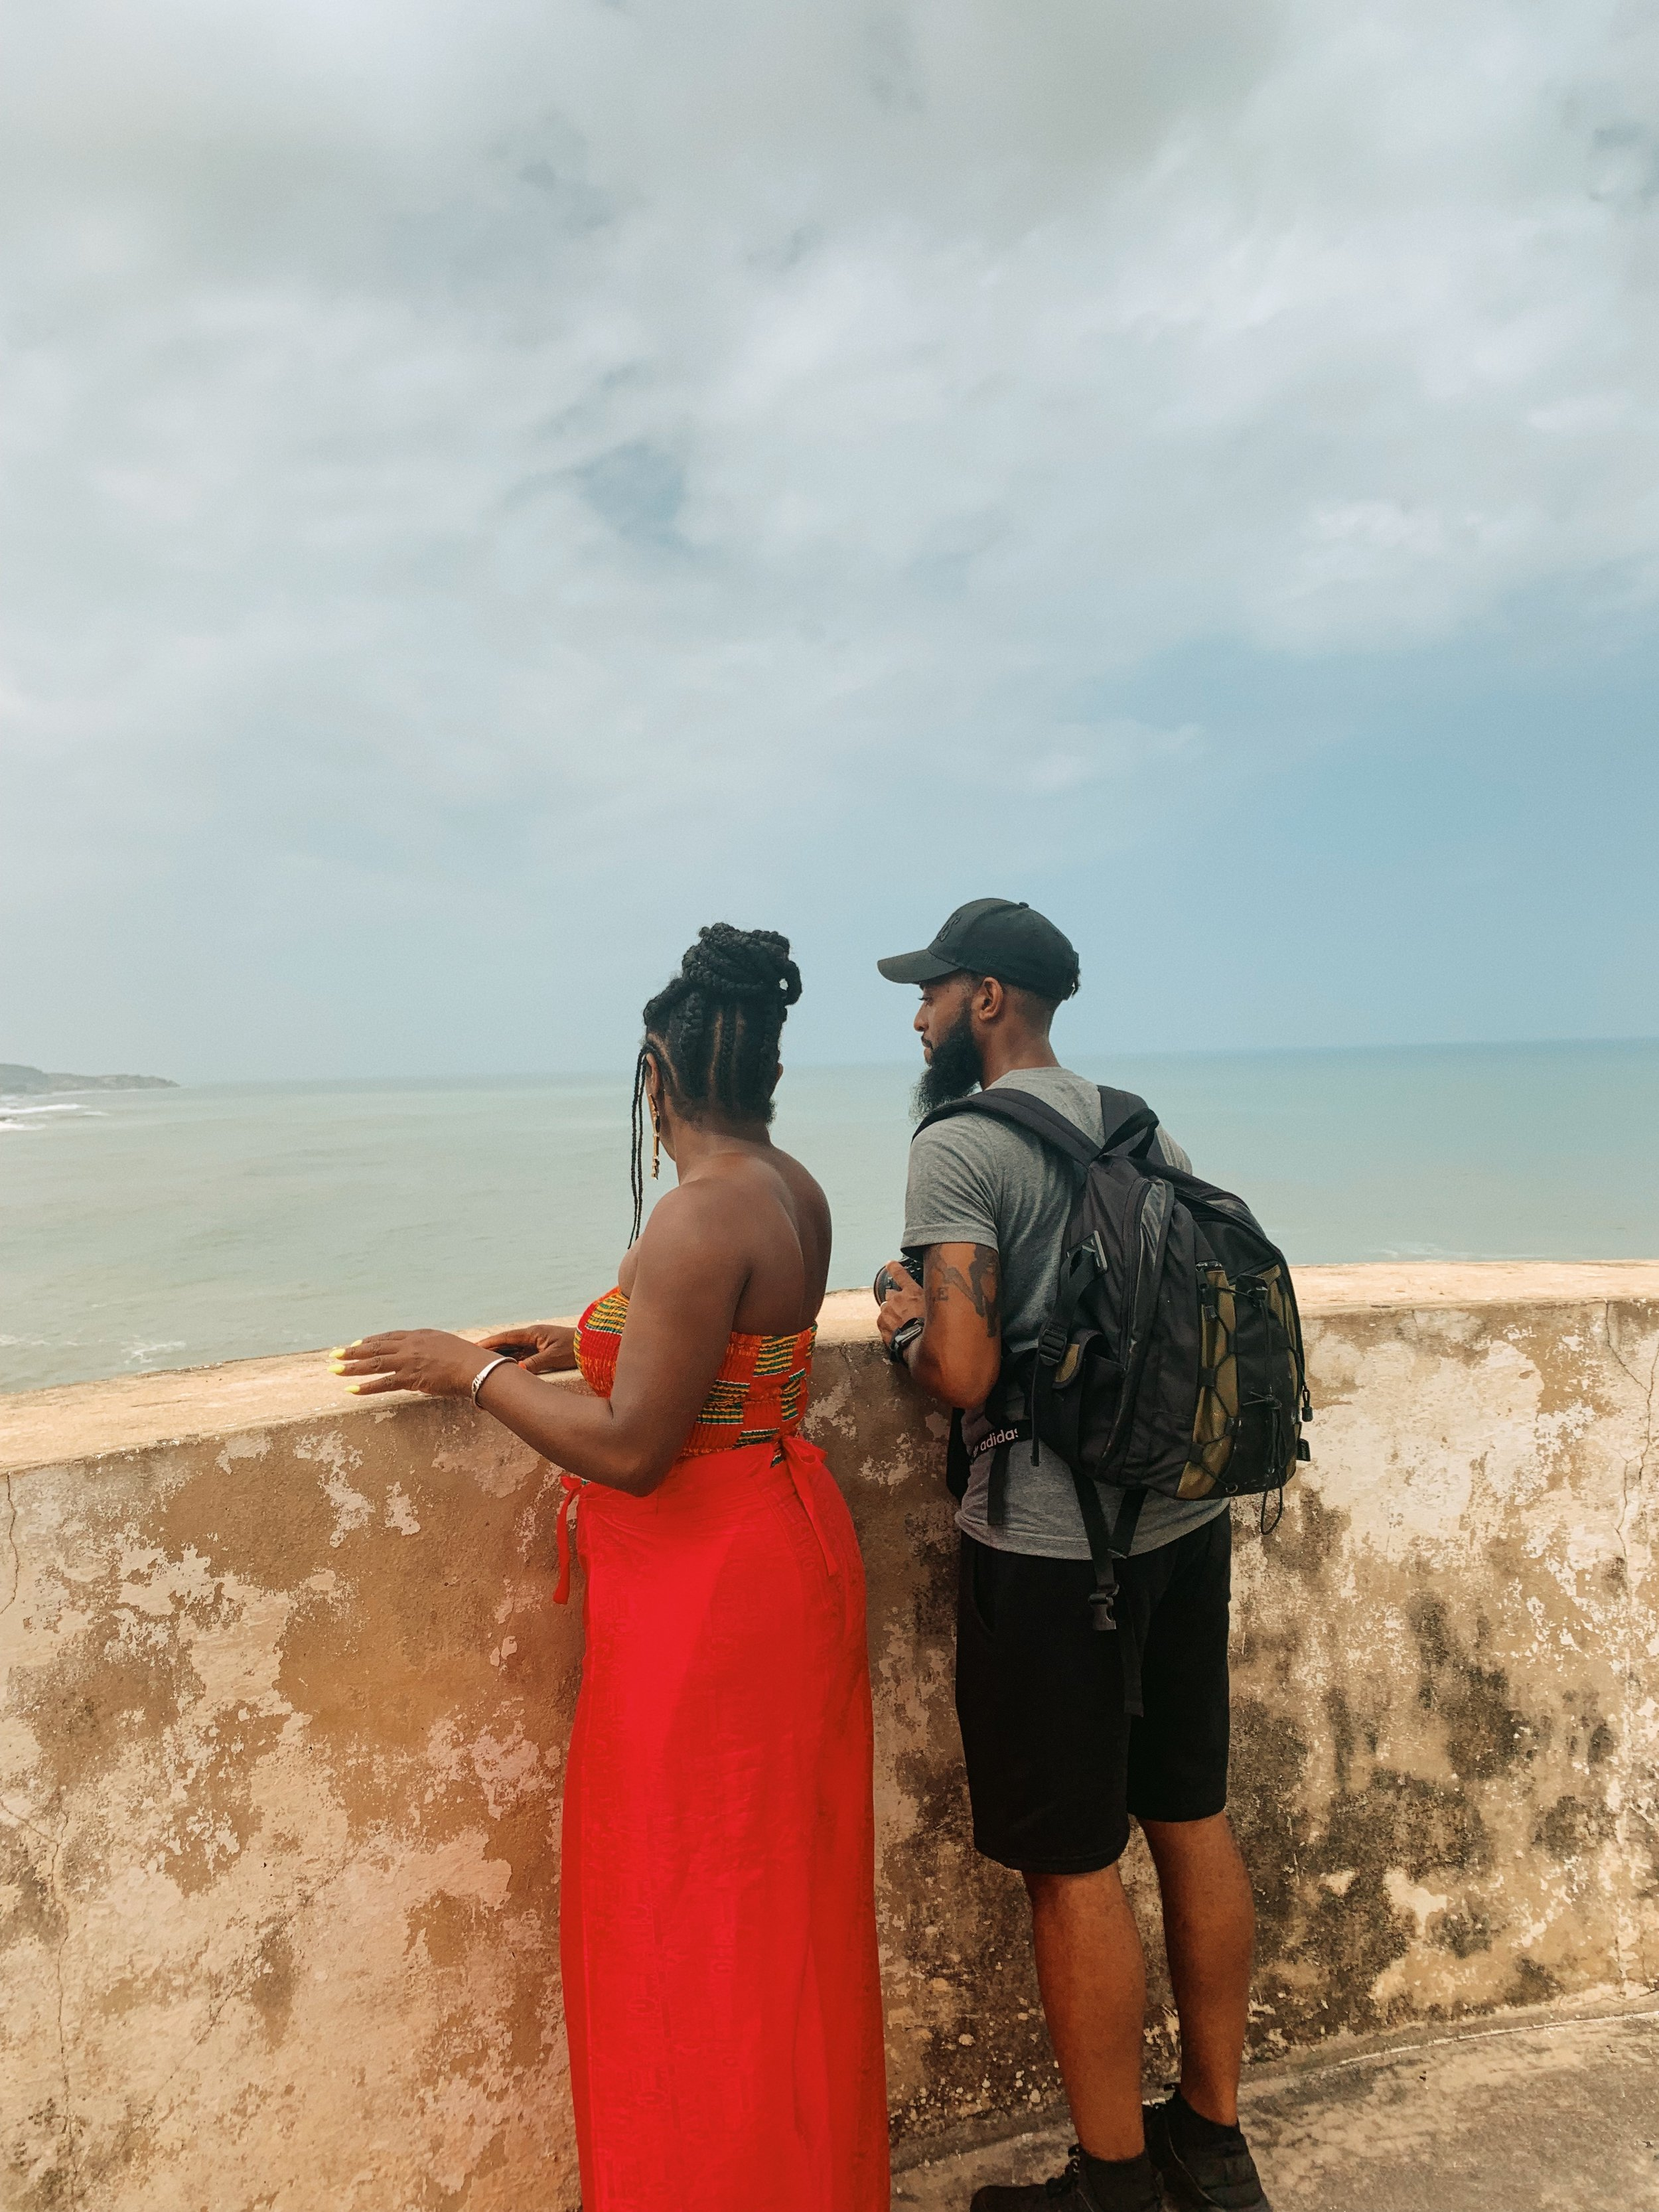 sharayna + kyle x cape coast castle, ghana.